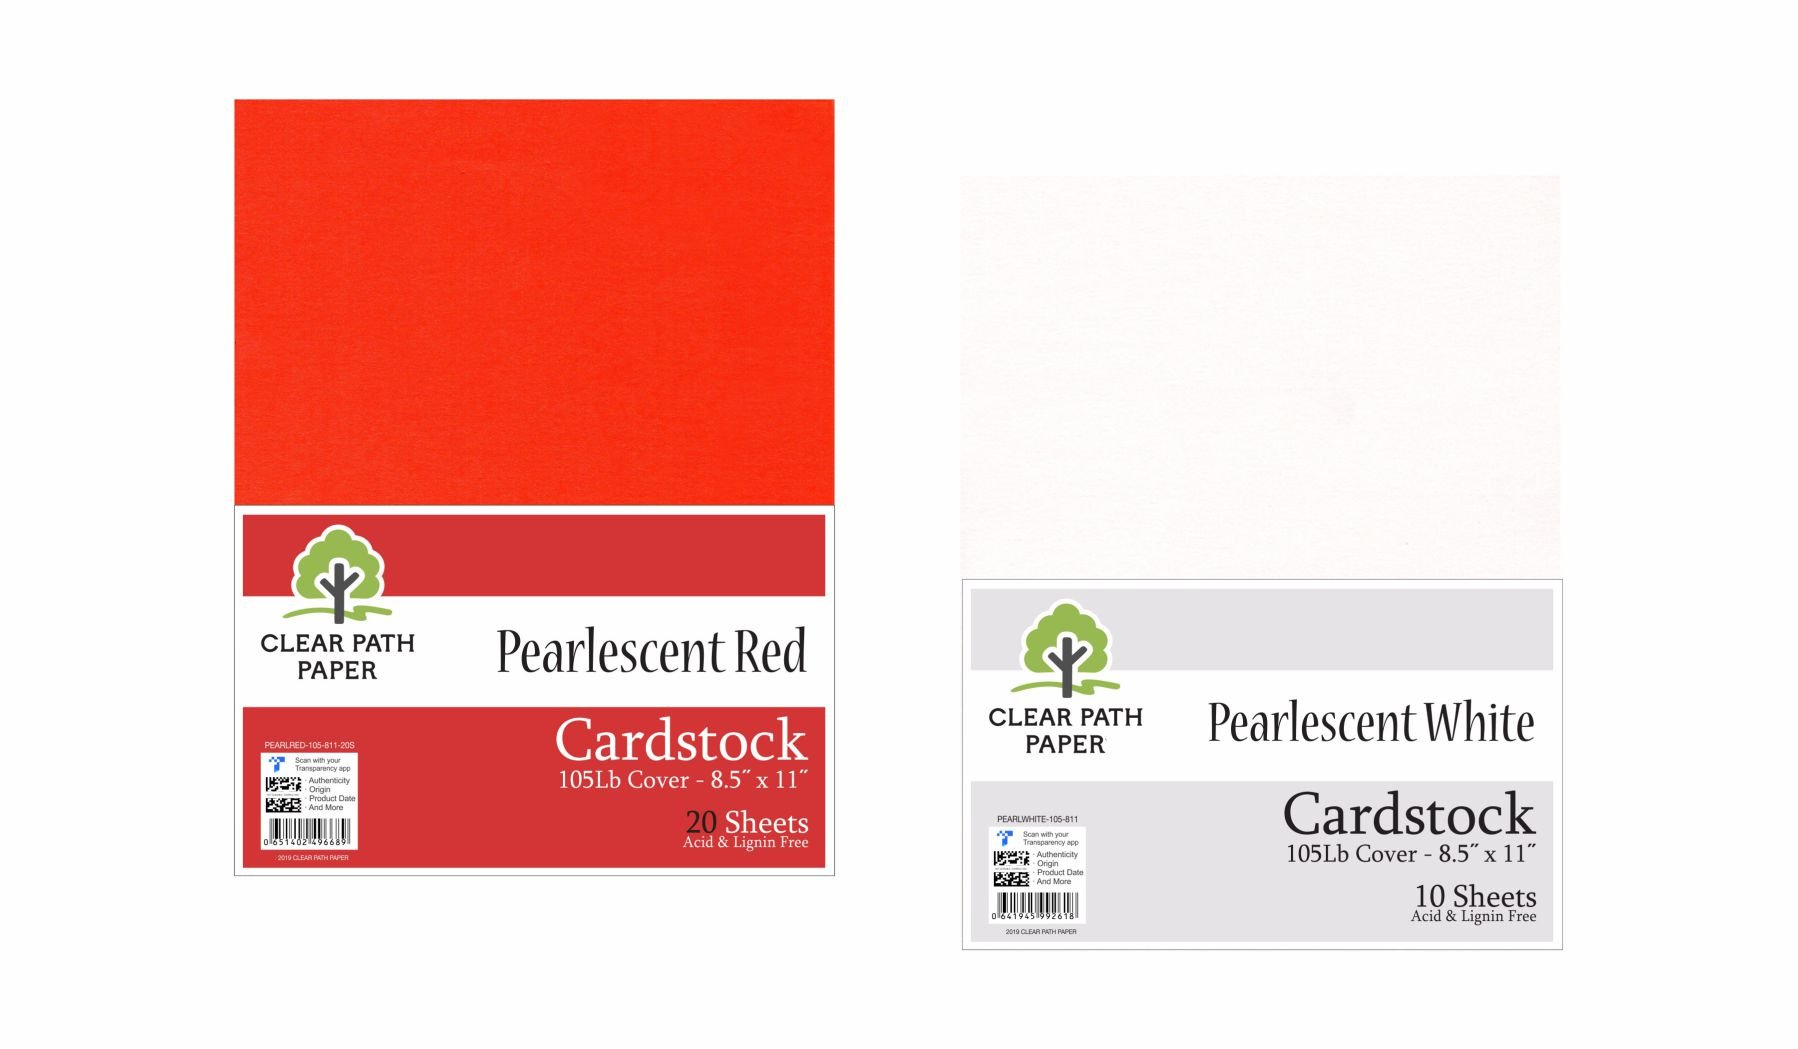 Image of an Amazon Bundle of Clear Path Paper cardstock in Pearlescent Red and Pearlescent White